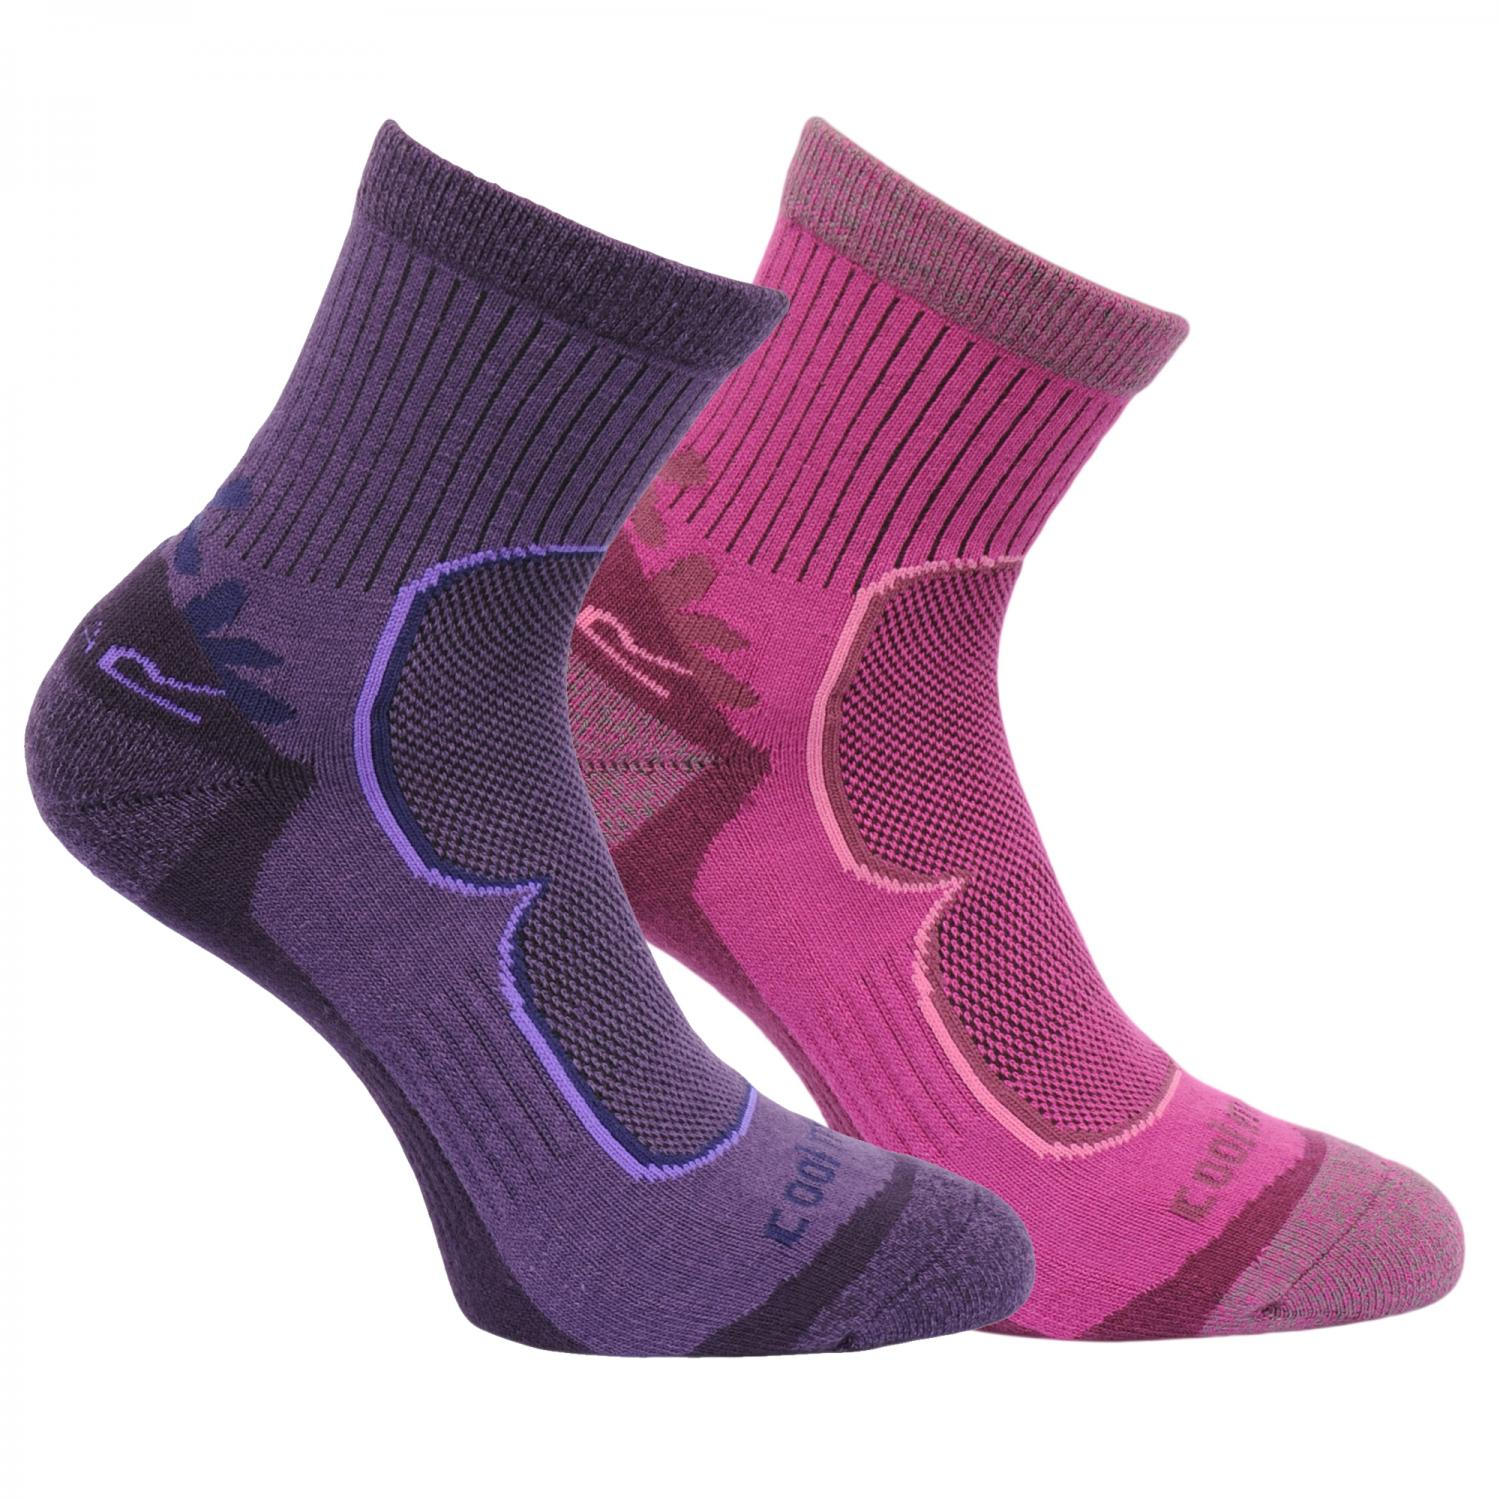 Clothing Accessories Womens 2 Pack Active Lifestyle Socks Blackberry Viola